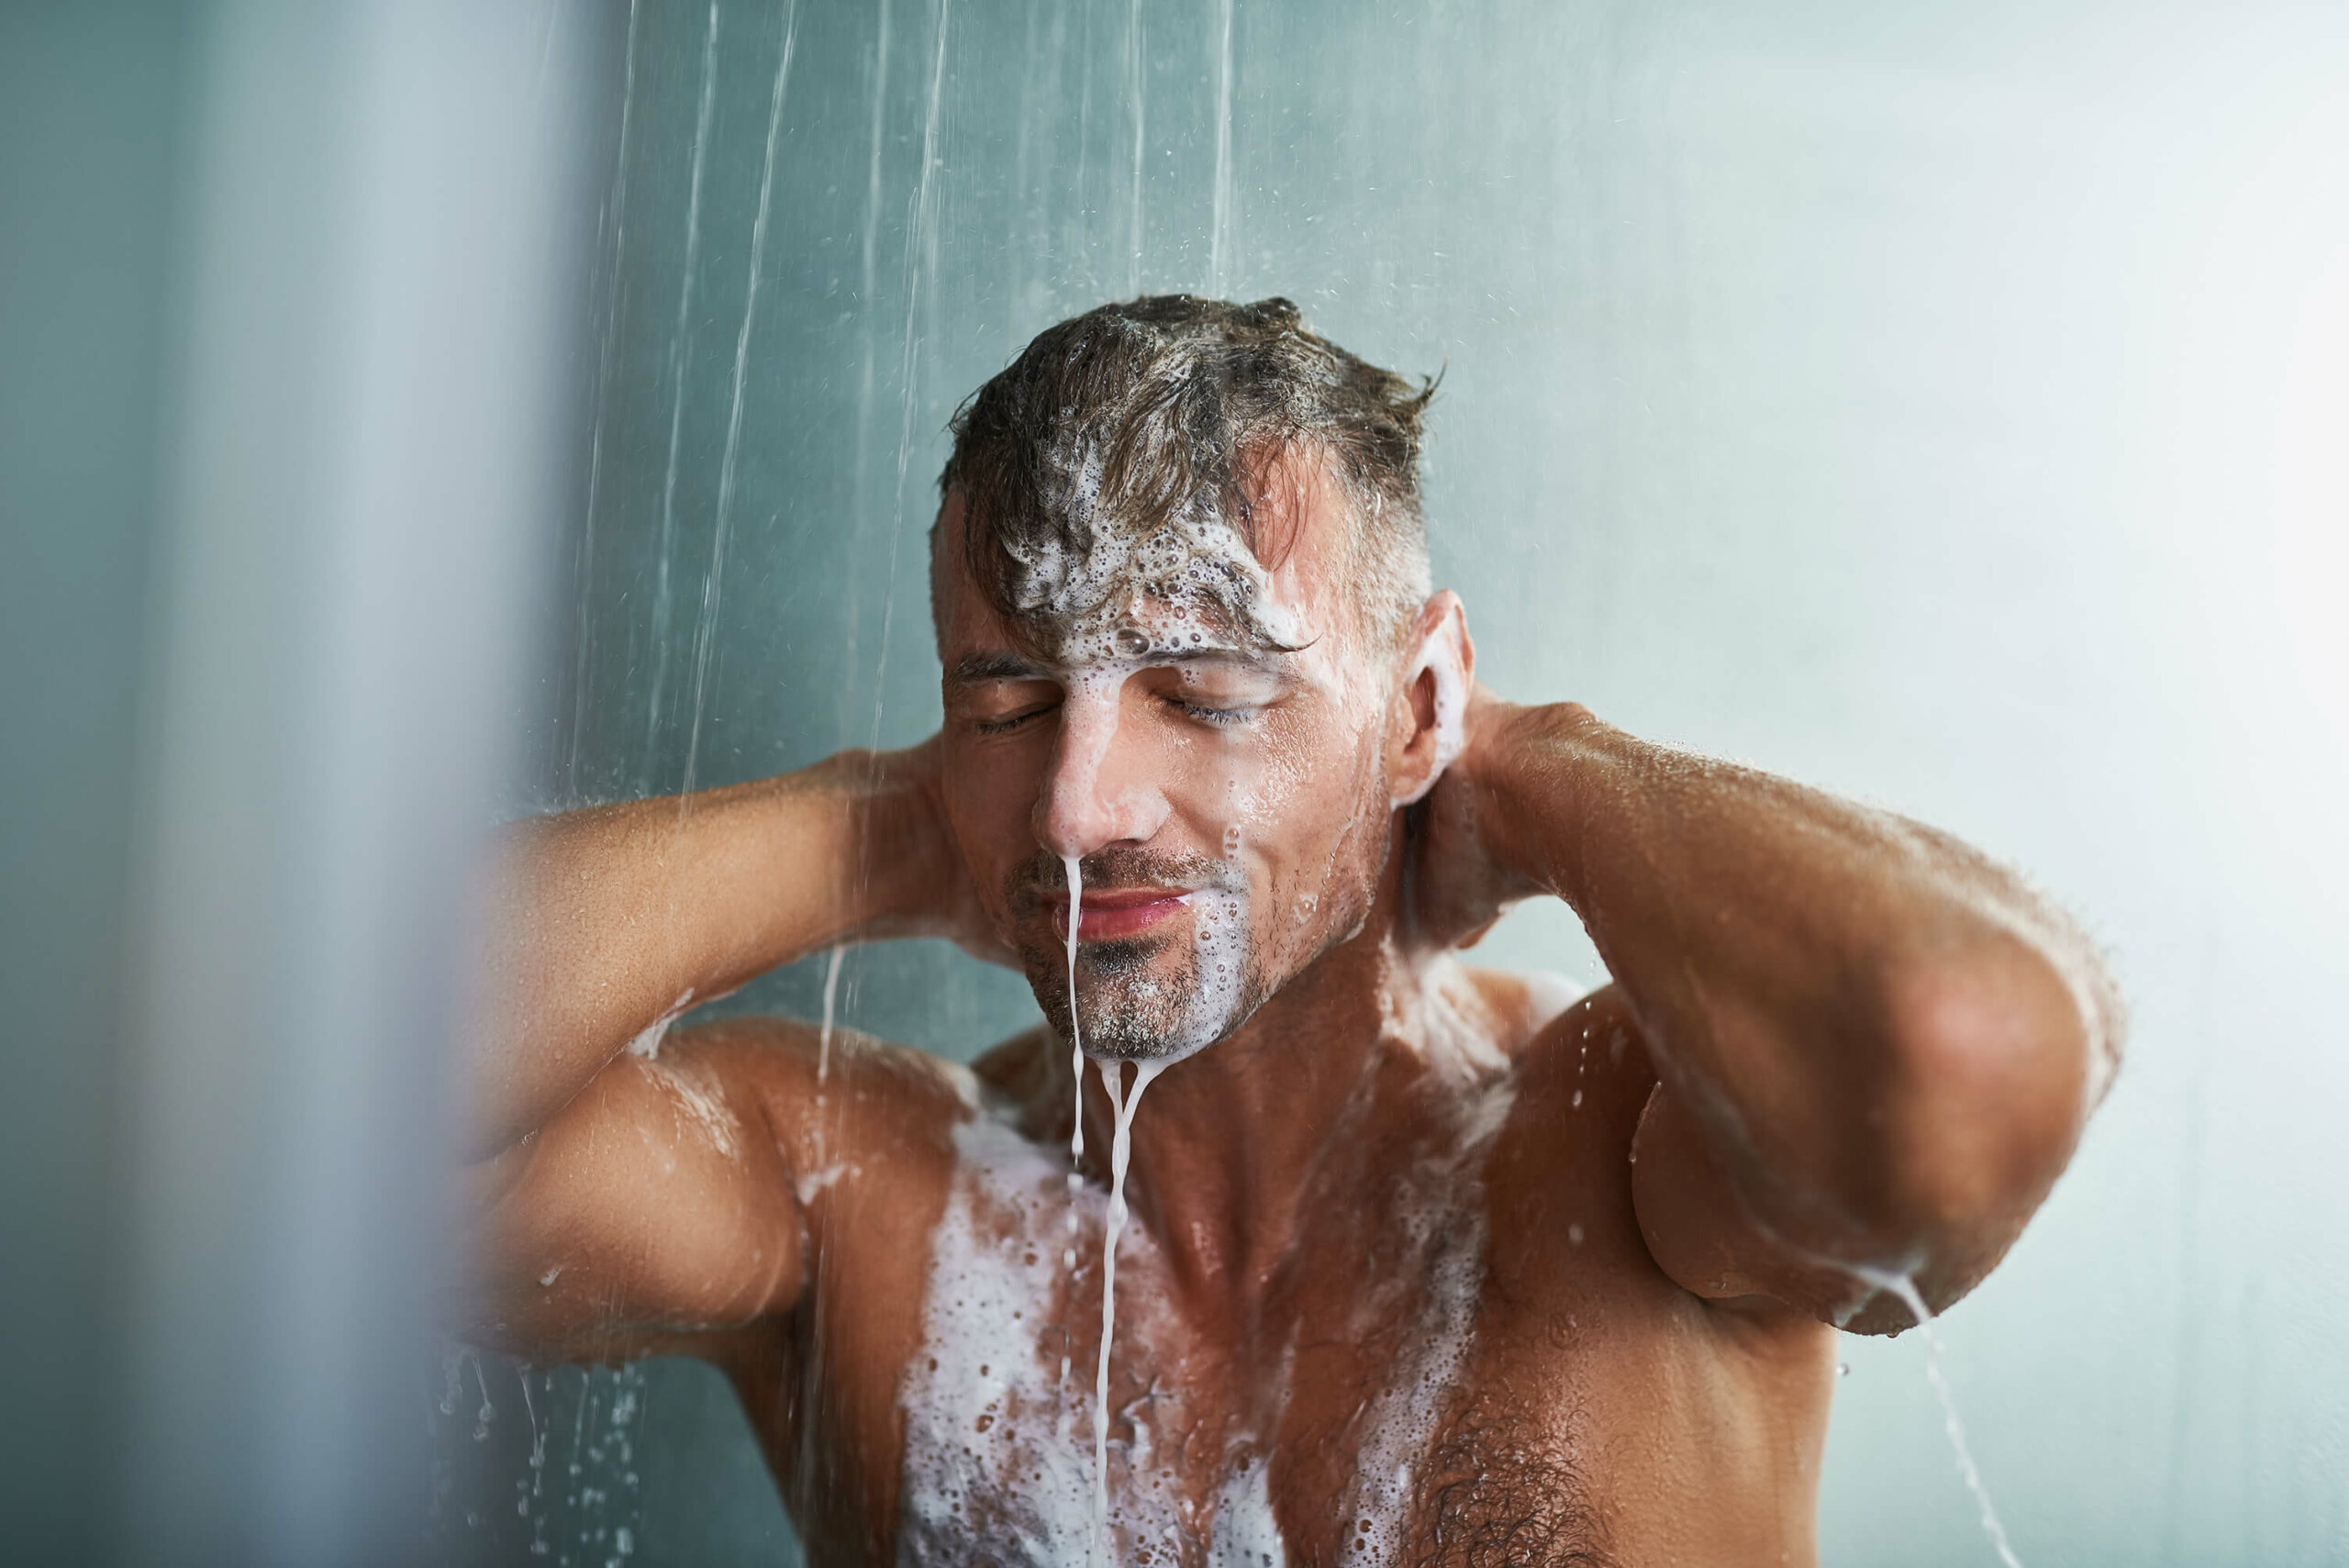 The upper body of a man covered in soap suds washing himself off in the shower